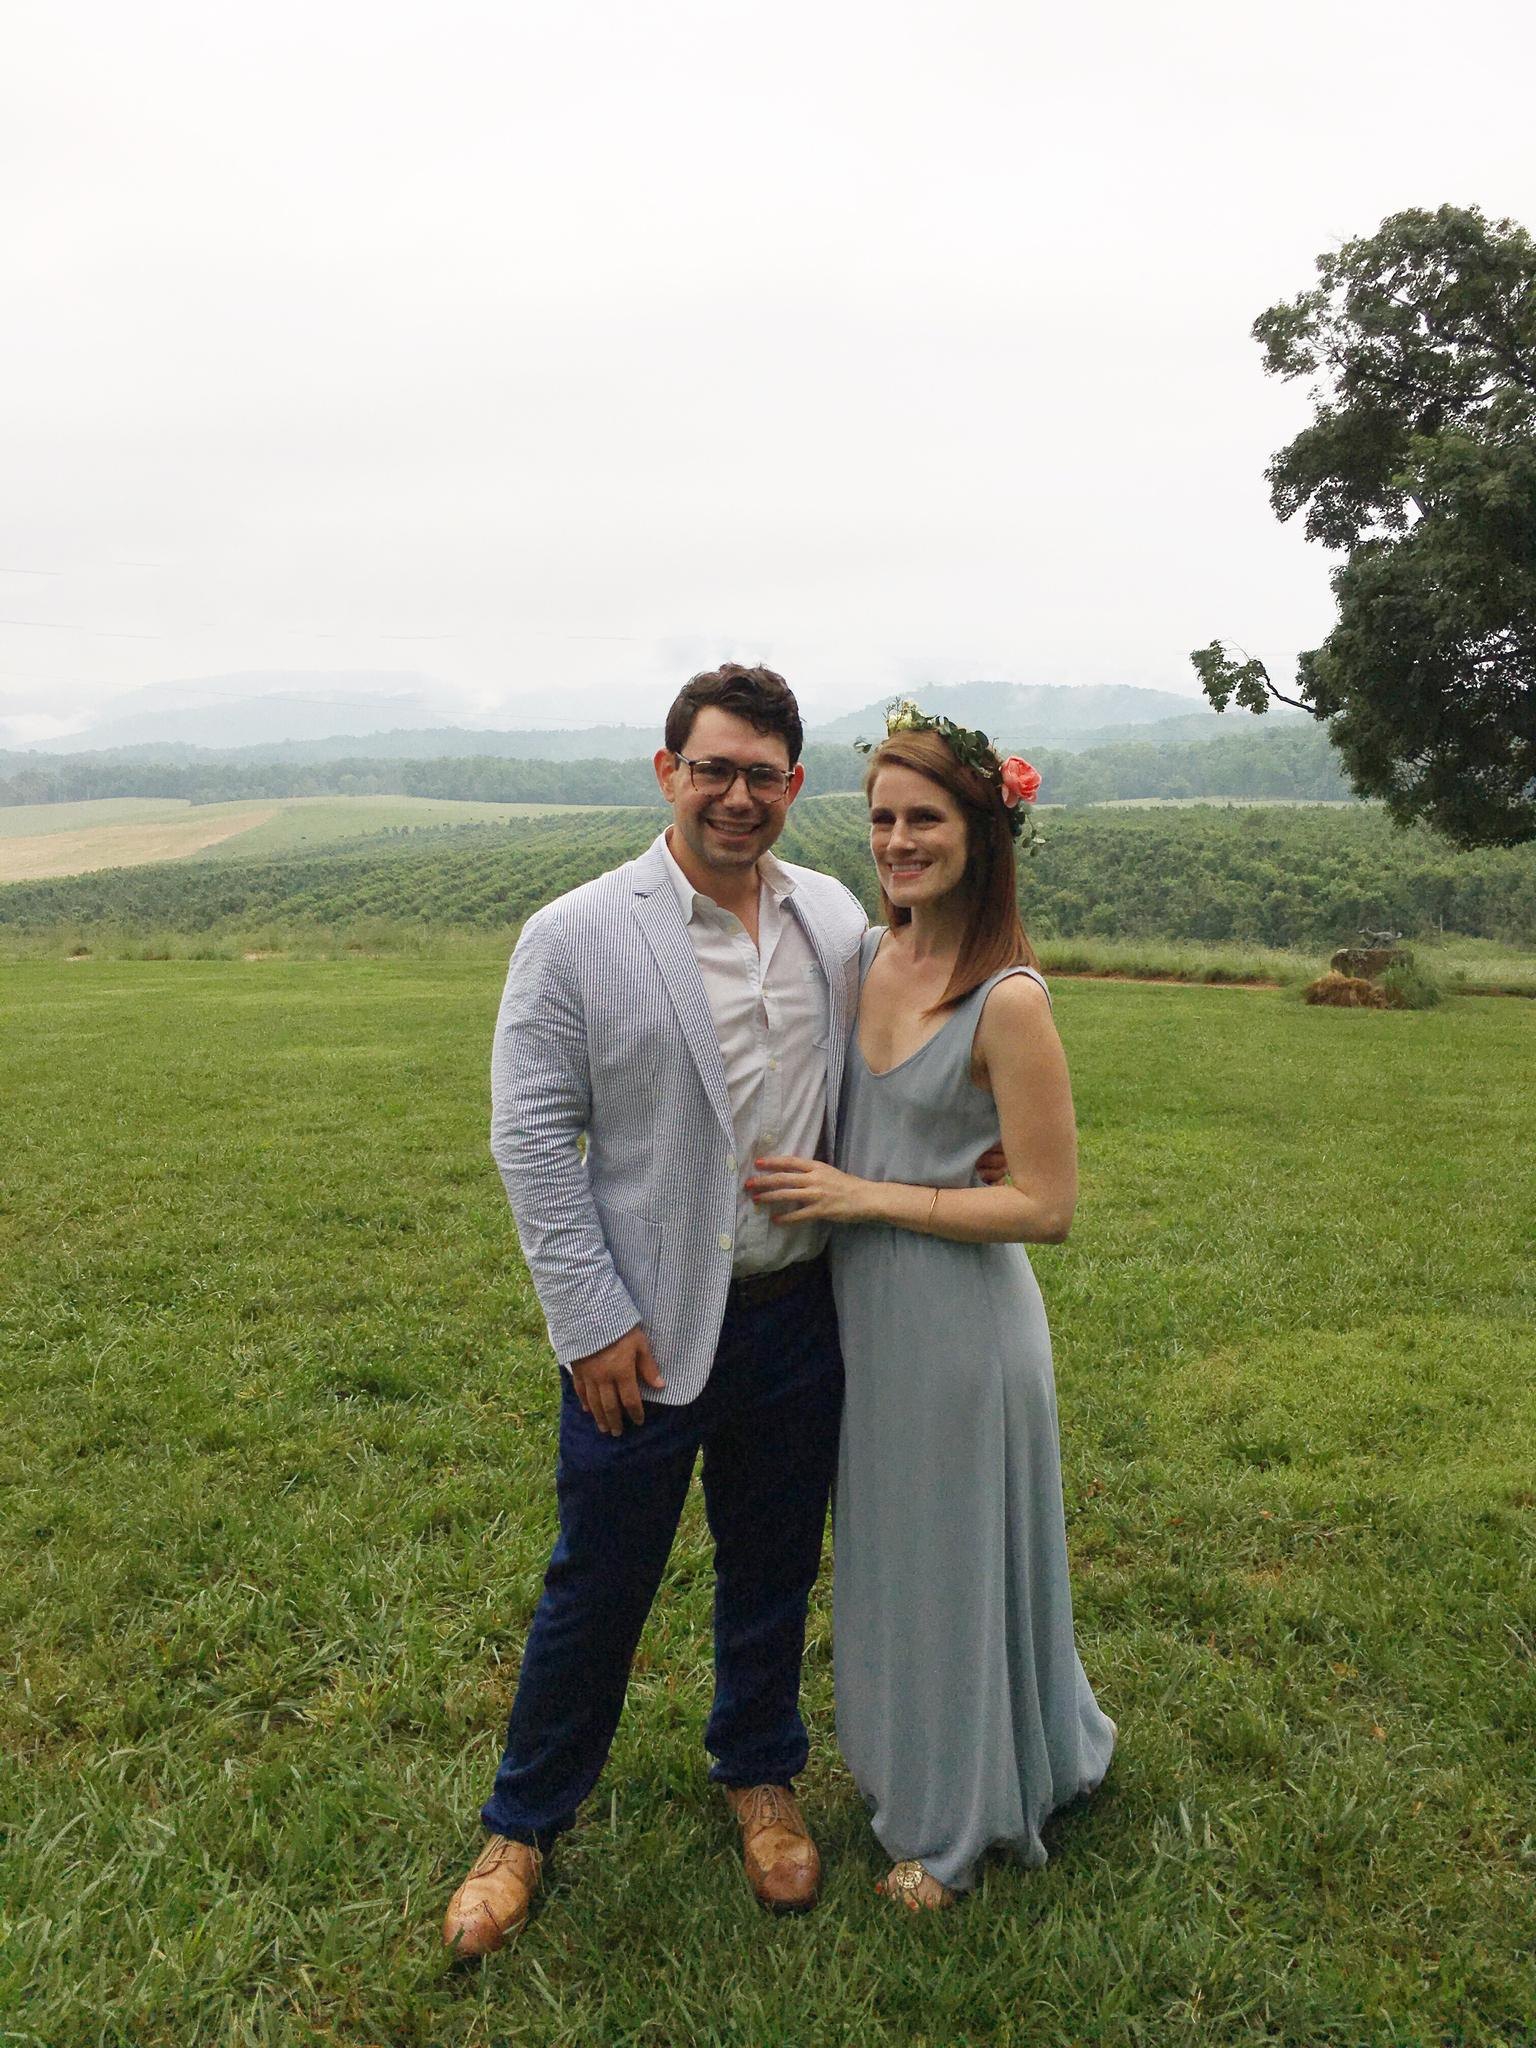 Heather's sister's wedding, May 2017